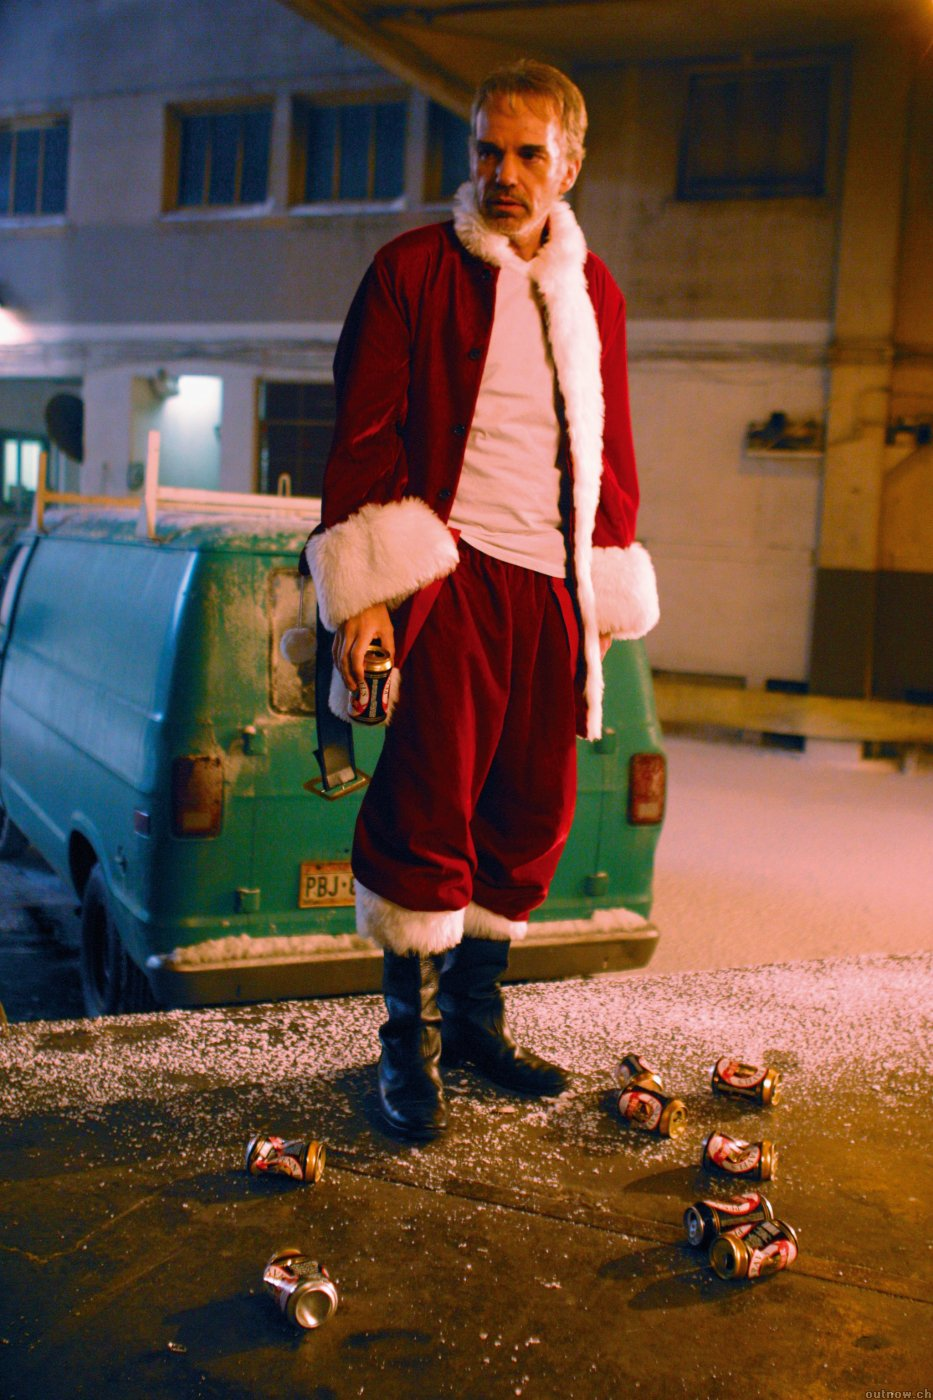 Film Szenenbild Bilder Bad Santa 2003 Movies Outnow